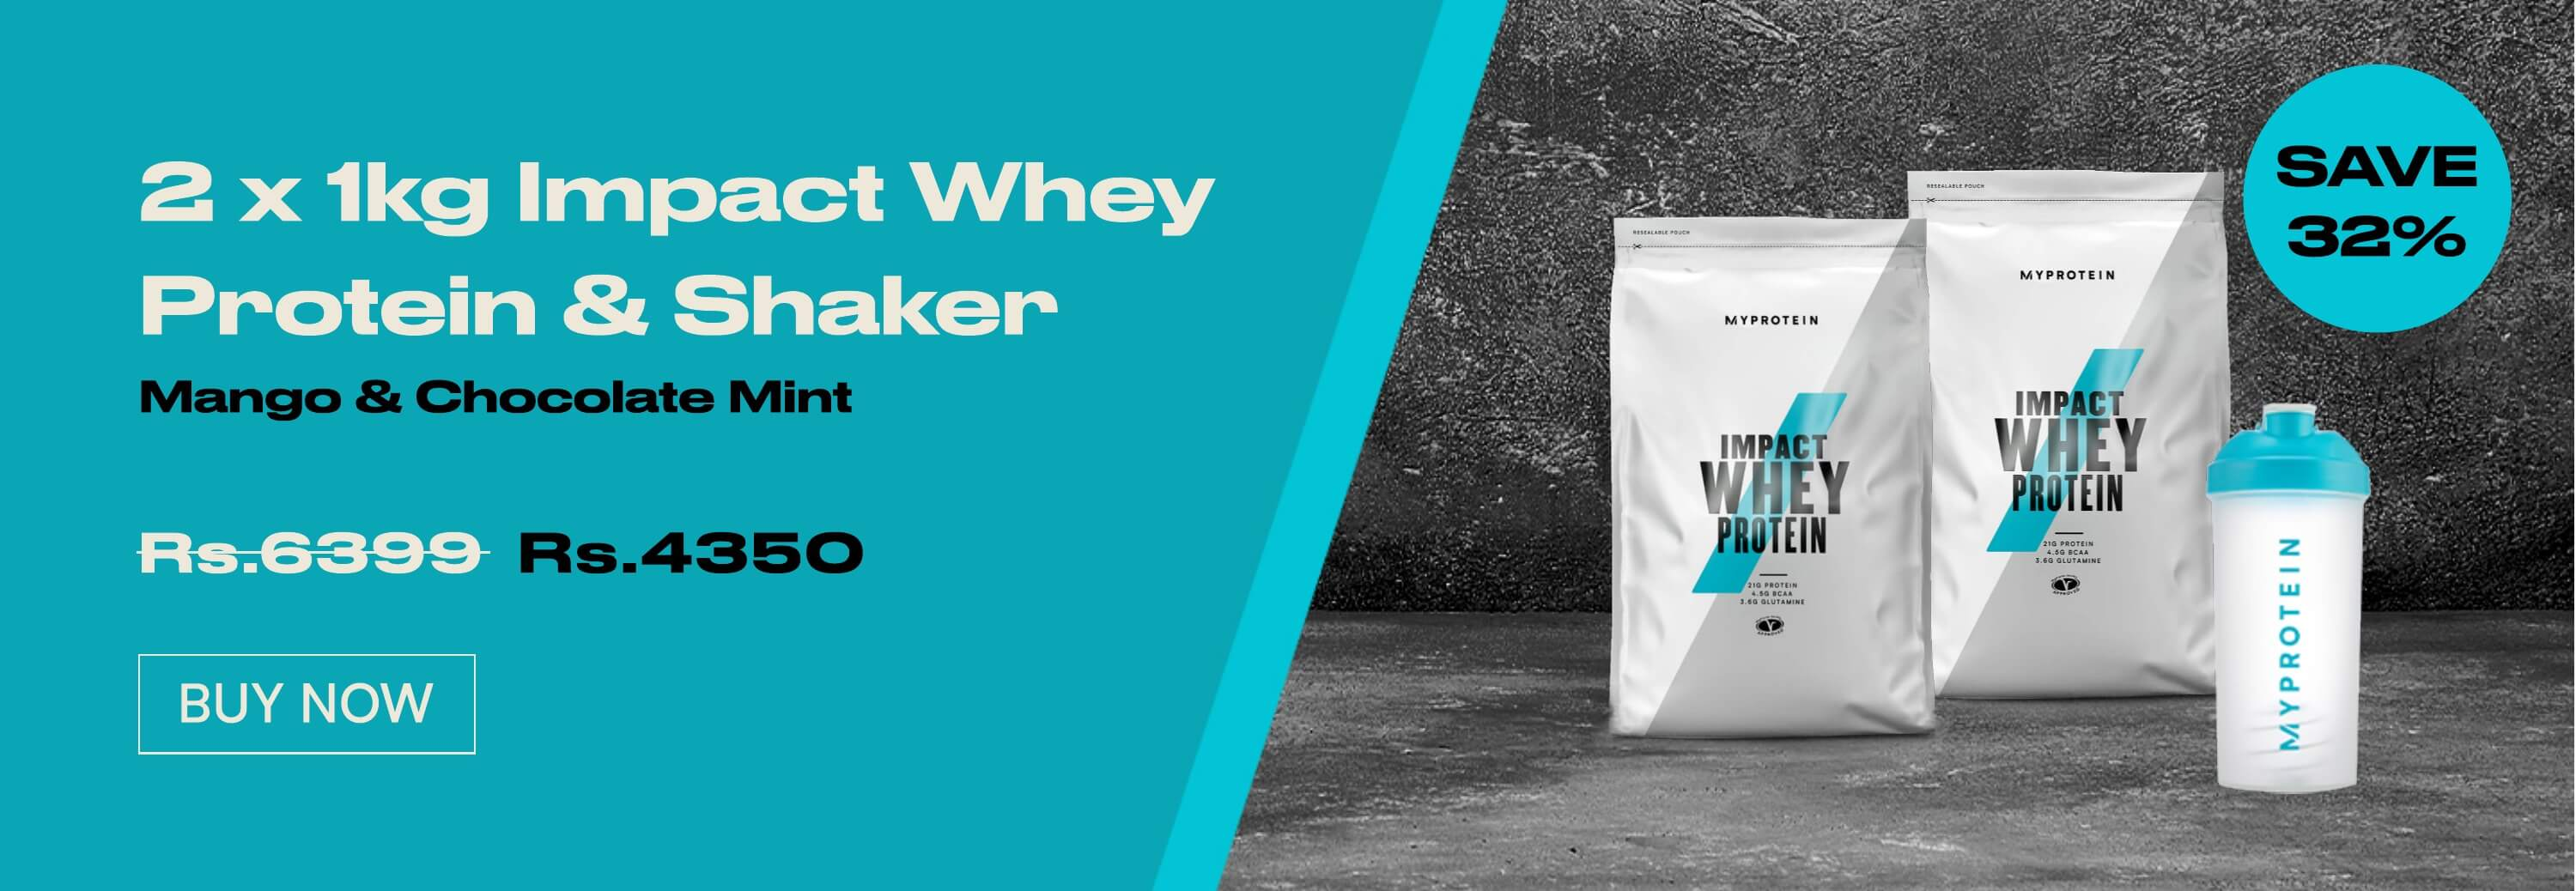 protein bundles at best prices